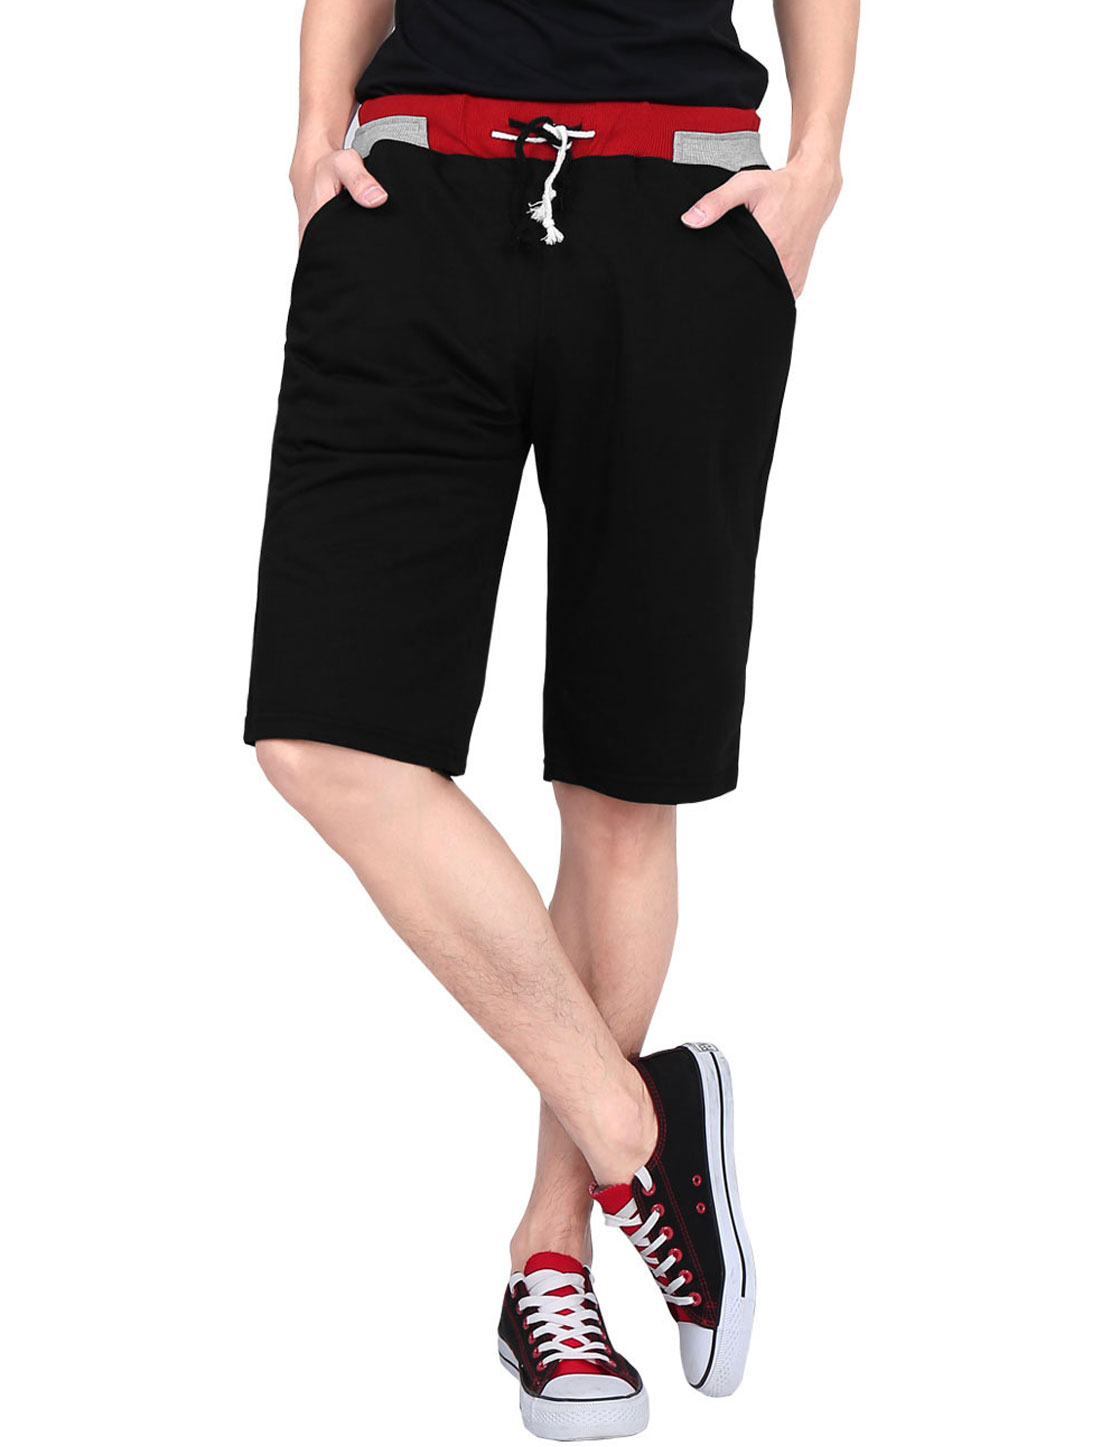 Men Color Block Drawstring Elastic Waistband Boardshorts Shorts Black XL